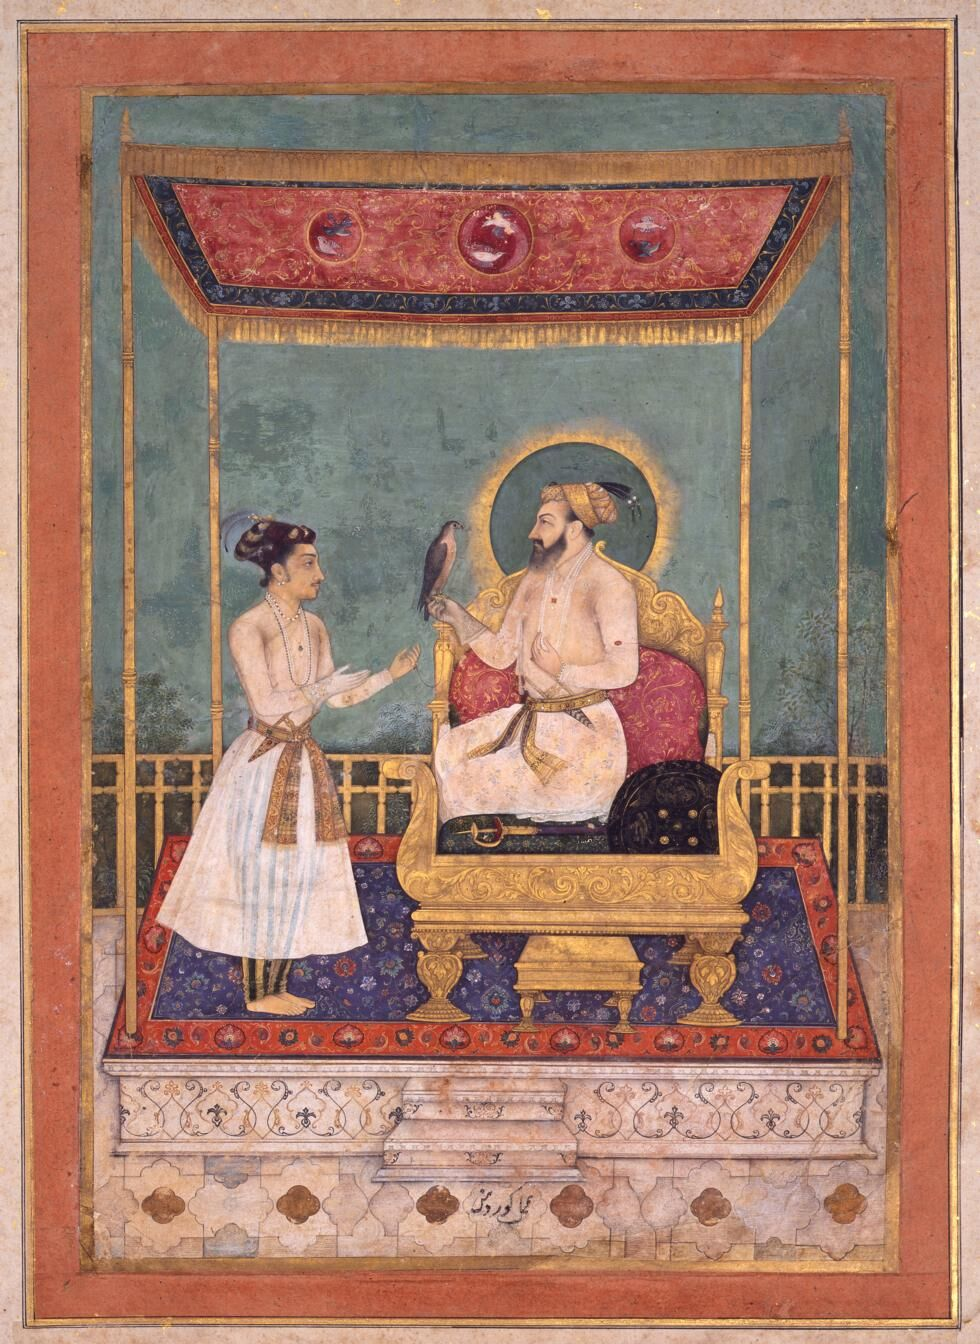 Govardhan, Shah Jahan accepts a falcon from Dara Shikoh, 1630. Courtesy of the San Diego Museum of Art/Bridgeman Images and the J. Paul Getty Museum, Los Angeles.